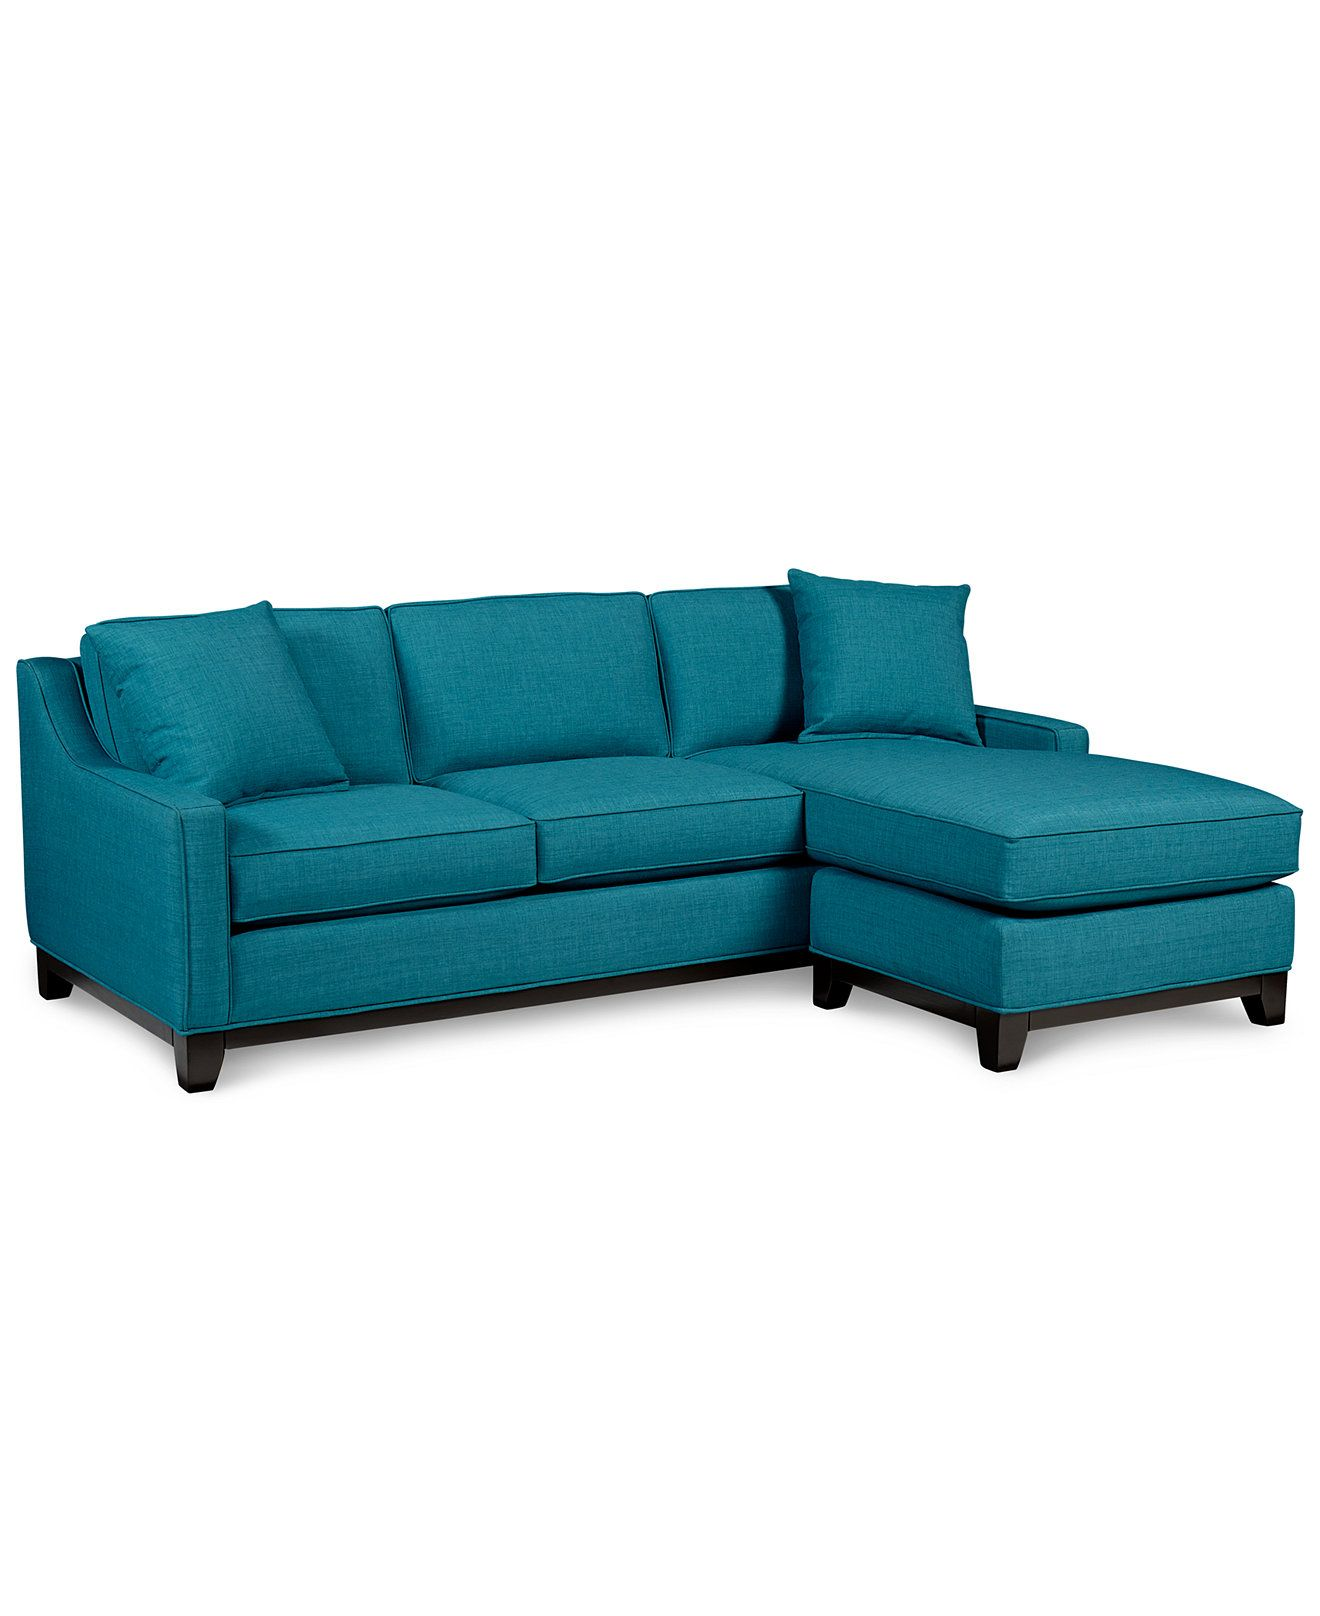 Keegan Fabric 2 Piece Sectional Sofa